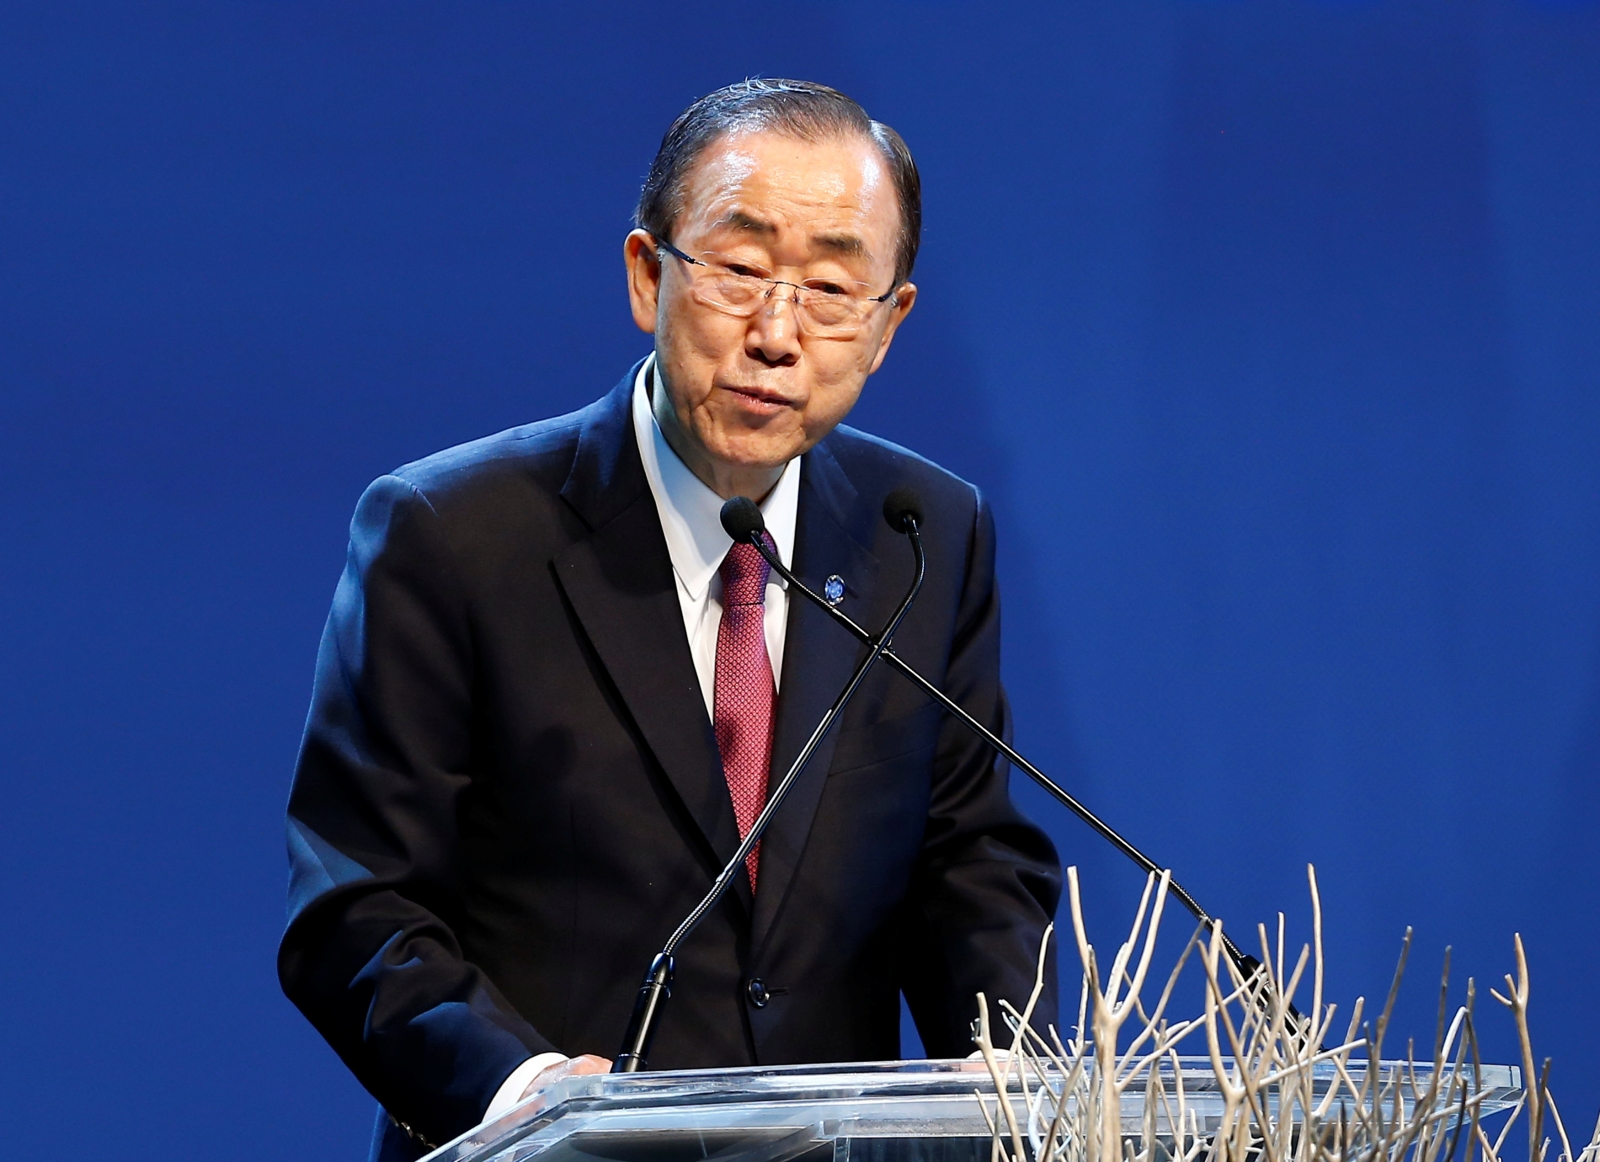 Ban Ki-moon South Korea president